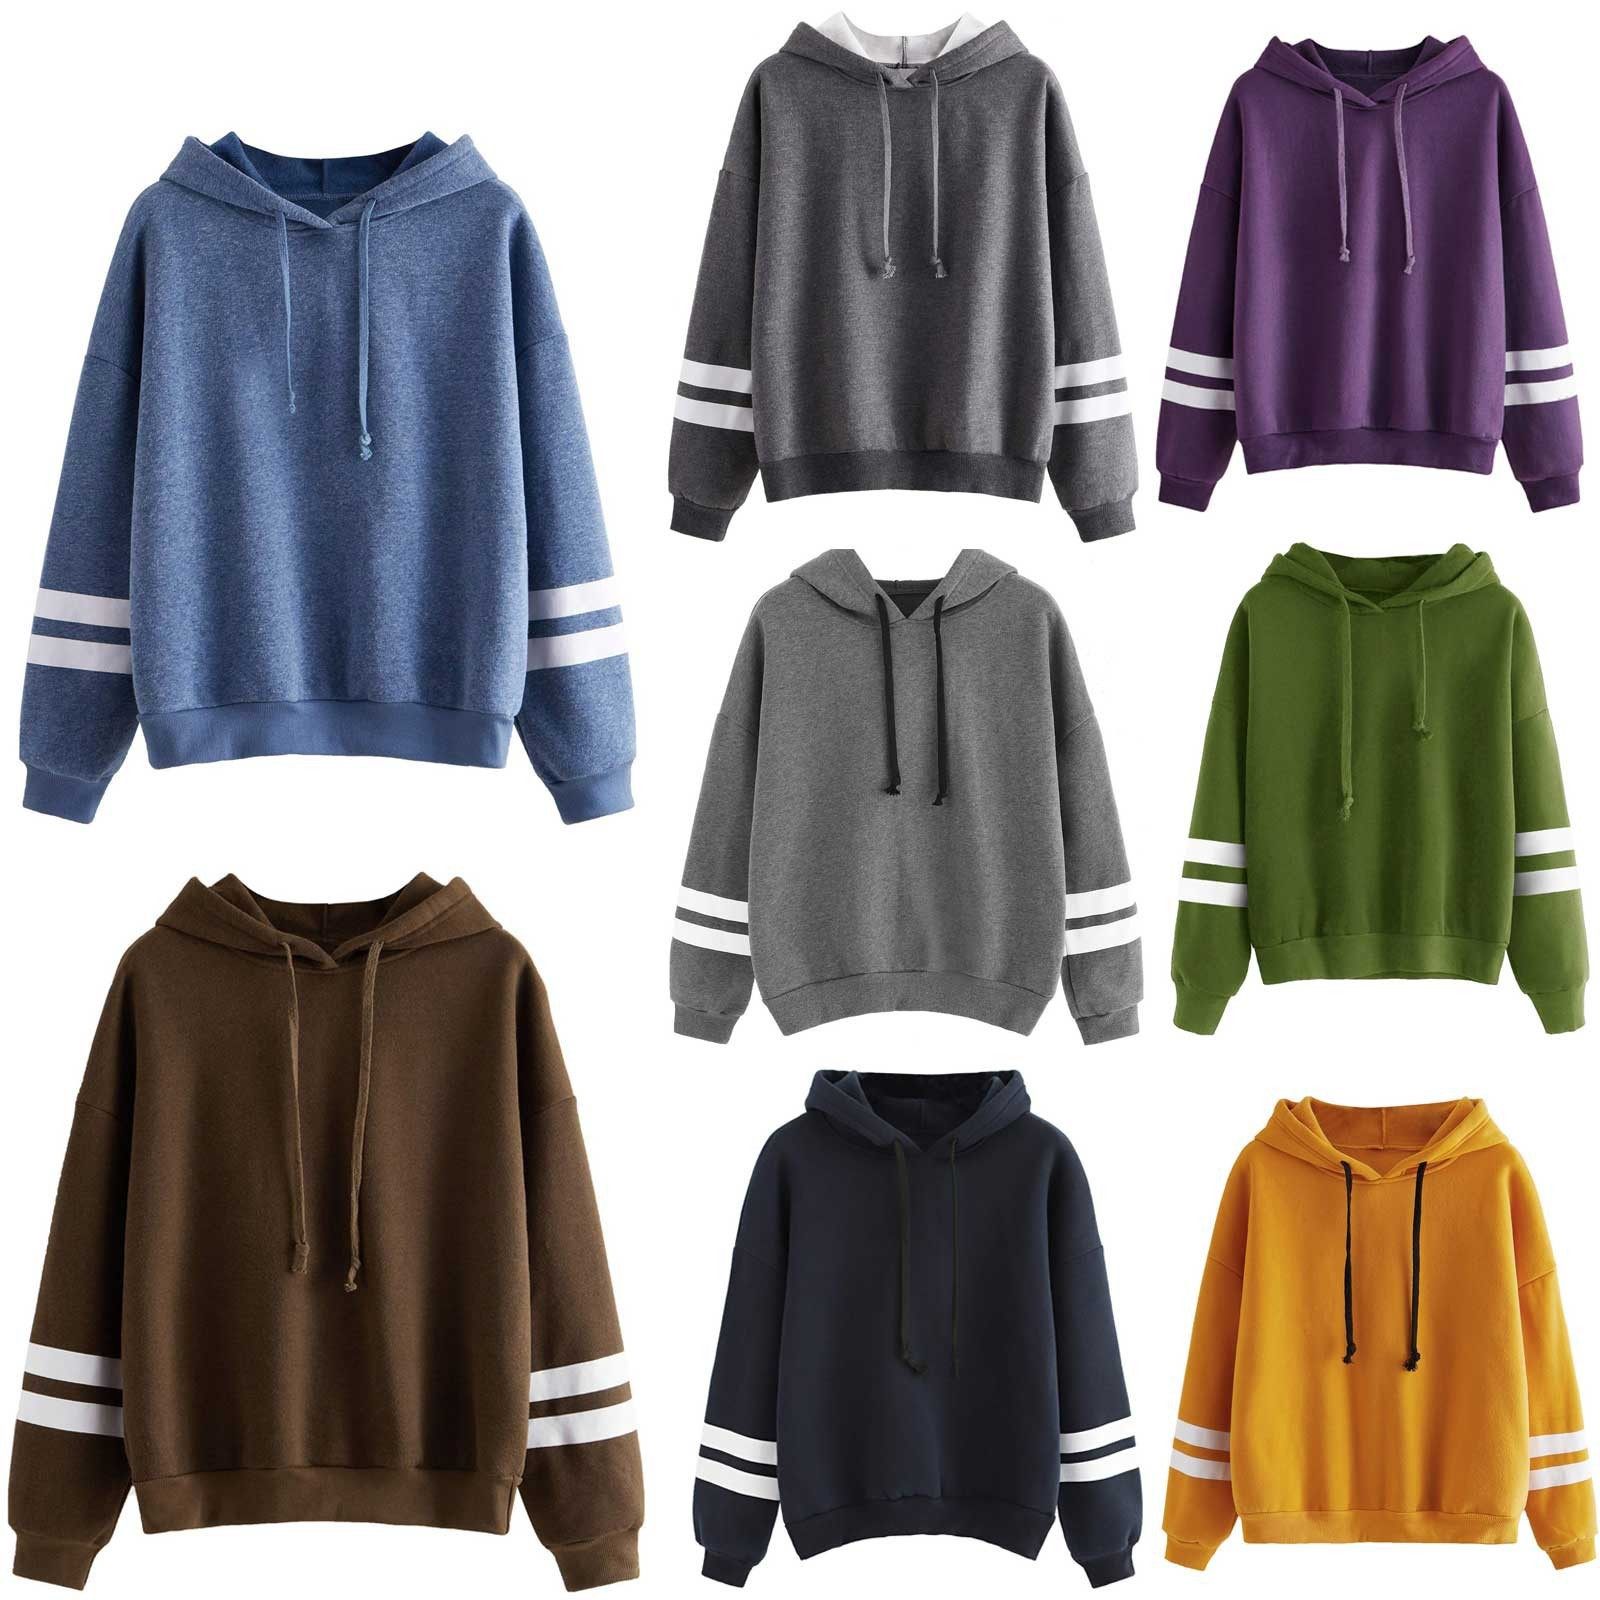 Basic Comfortable Hoodie for Lounging During Autumn